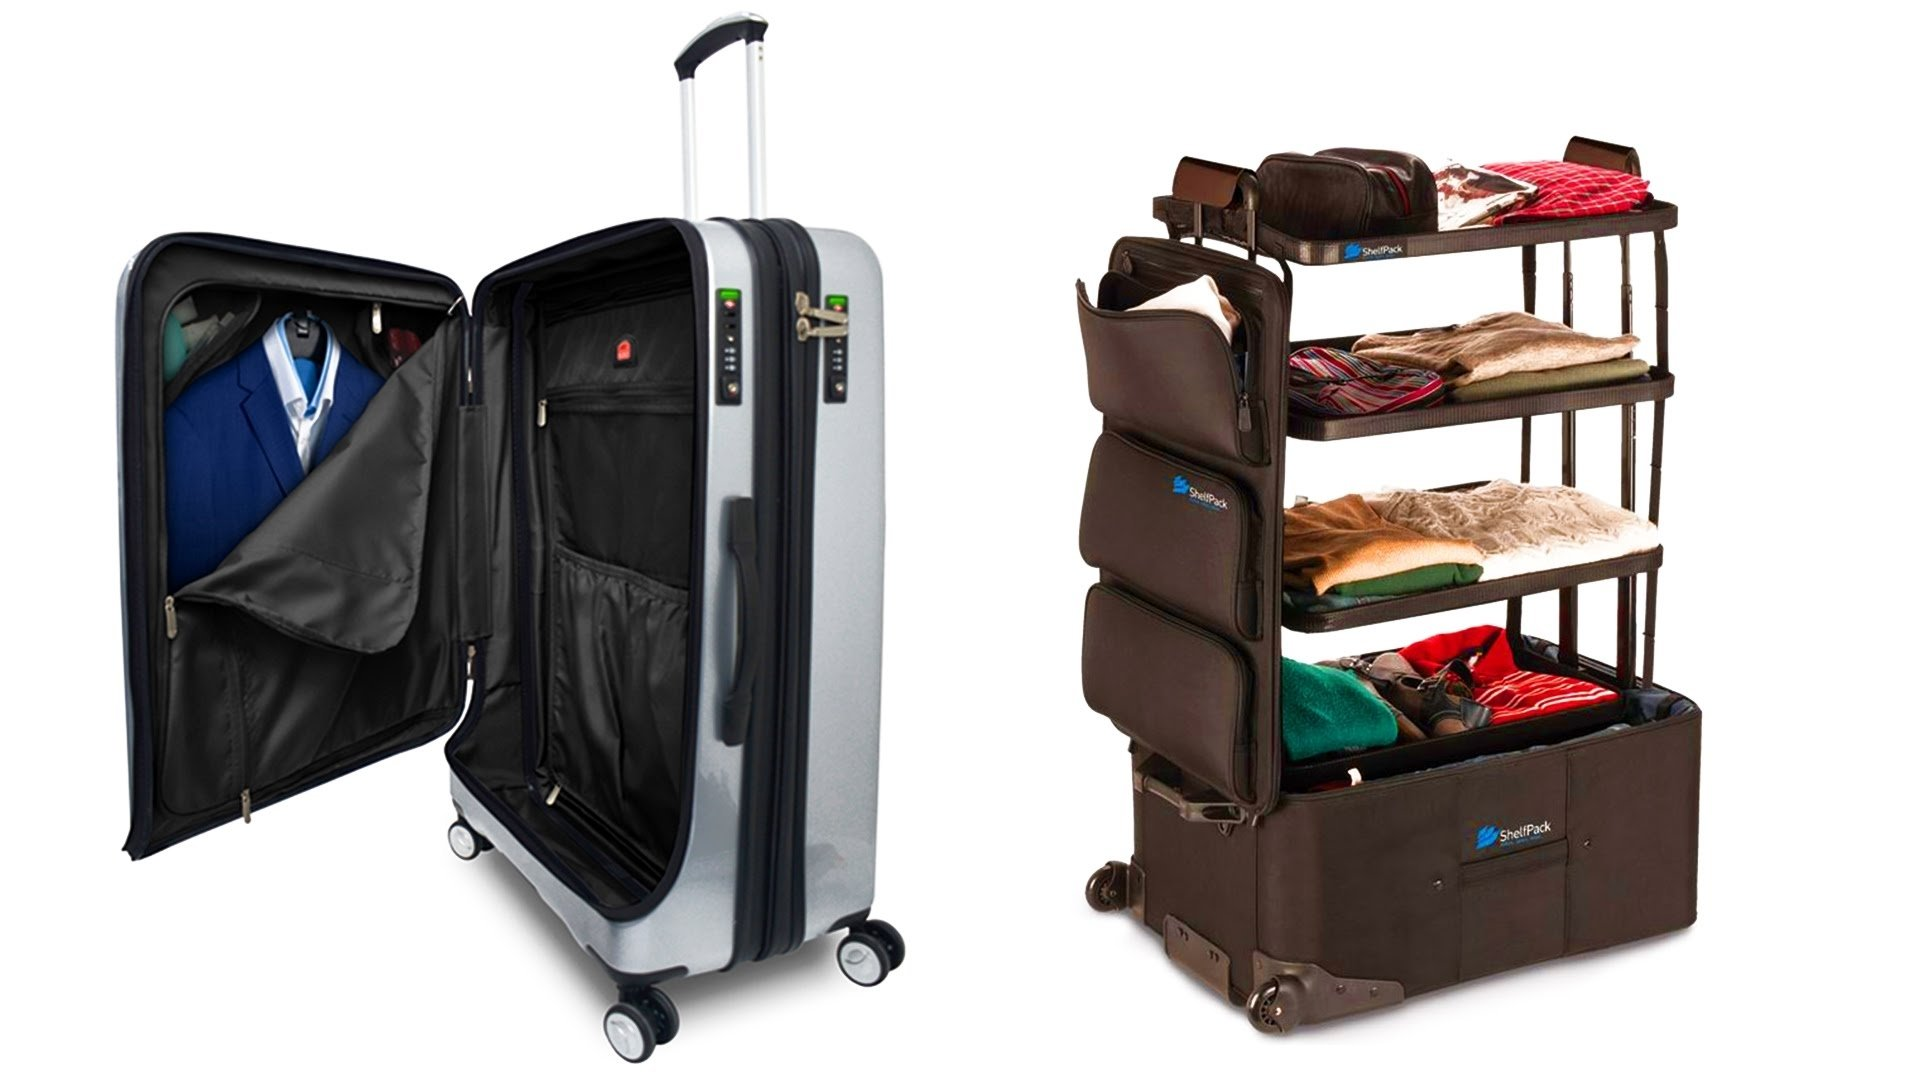 10 Fashionable Ideas For A New Product 6 new product design and innovation for luggage e296bb product design 1 2021